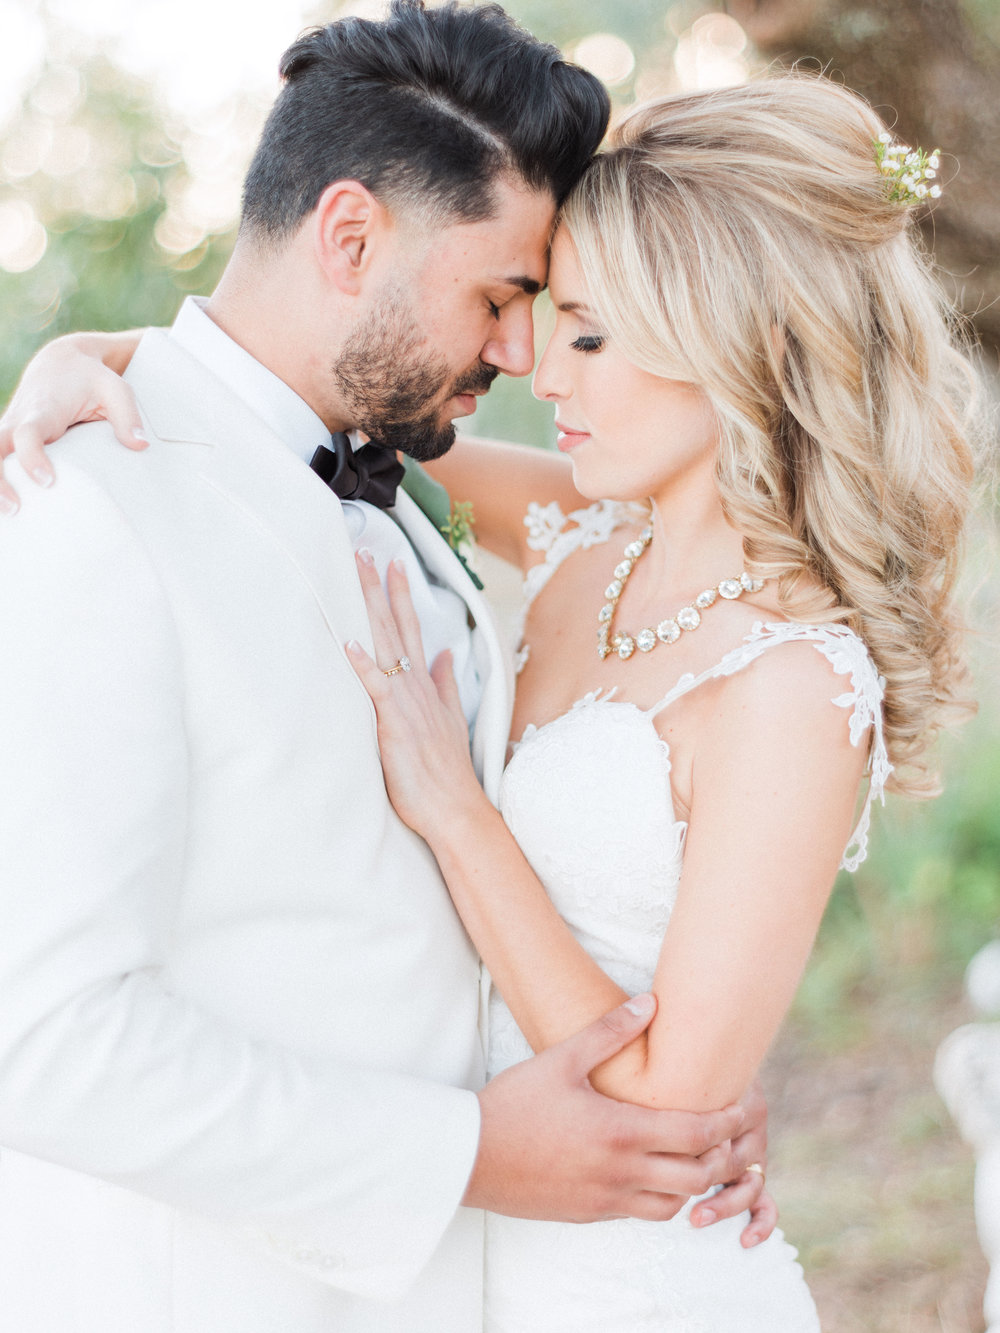 Mostly Becky is the reason why our wedding day was spectacular! The amount of attention Becky dedicated to every detail of our wedding saved me a lot of stress, and worry. She really has a gift in organization and event coordinating.- Camille, Florida 2018 - Planned by Becky